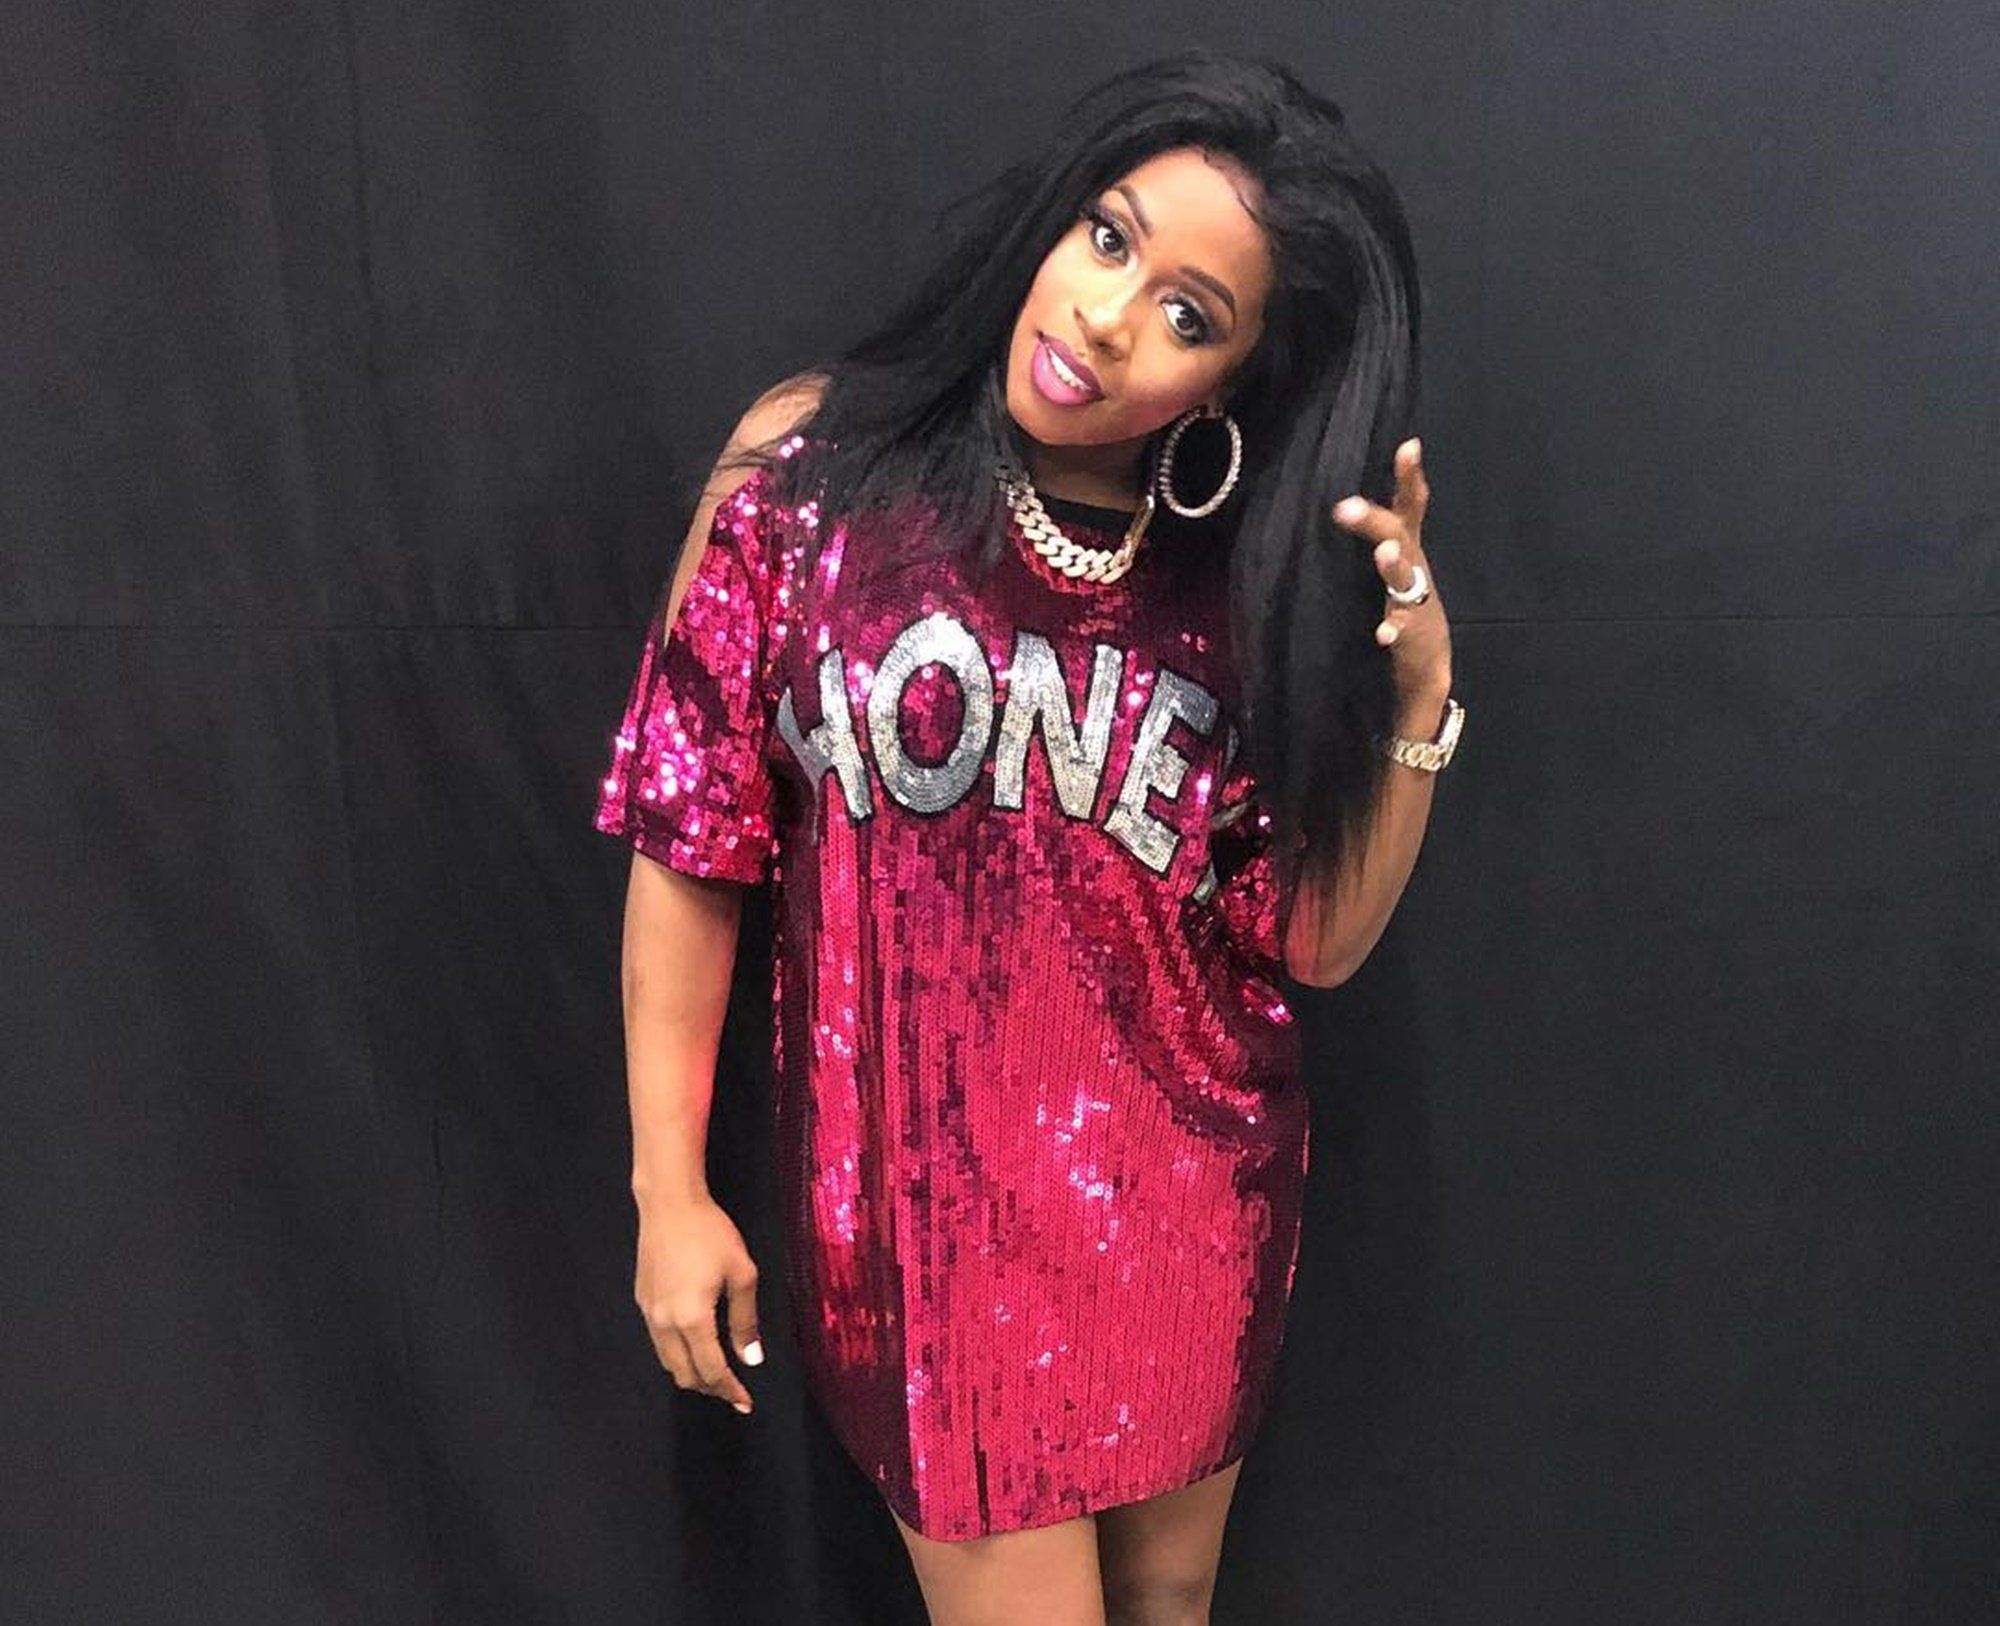 remy-ma-is-blown-away-by-her-and-papooses-golden-child-here-are-her-videos-with-some-adorable-moments-tamar-braxton-is-here-for-this